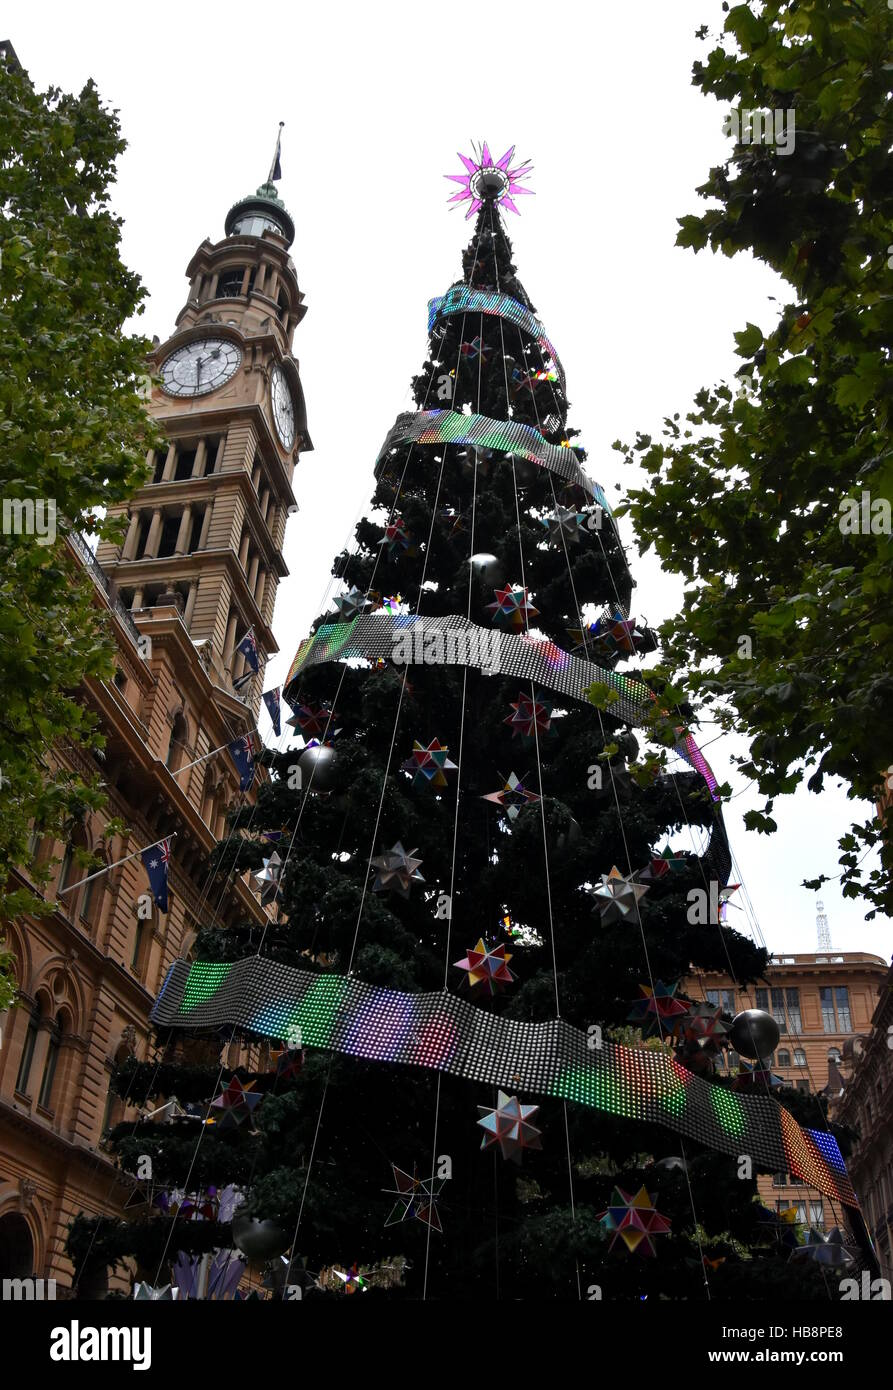 How to decorate tall outdoor christmas tree - Stock Photo Tall Outdoor Christmas Tree With Decoration Summer In Martin Place Sydney Australia